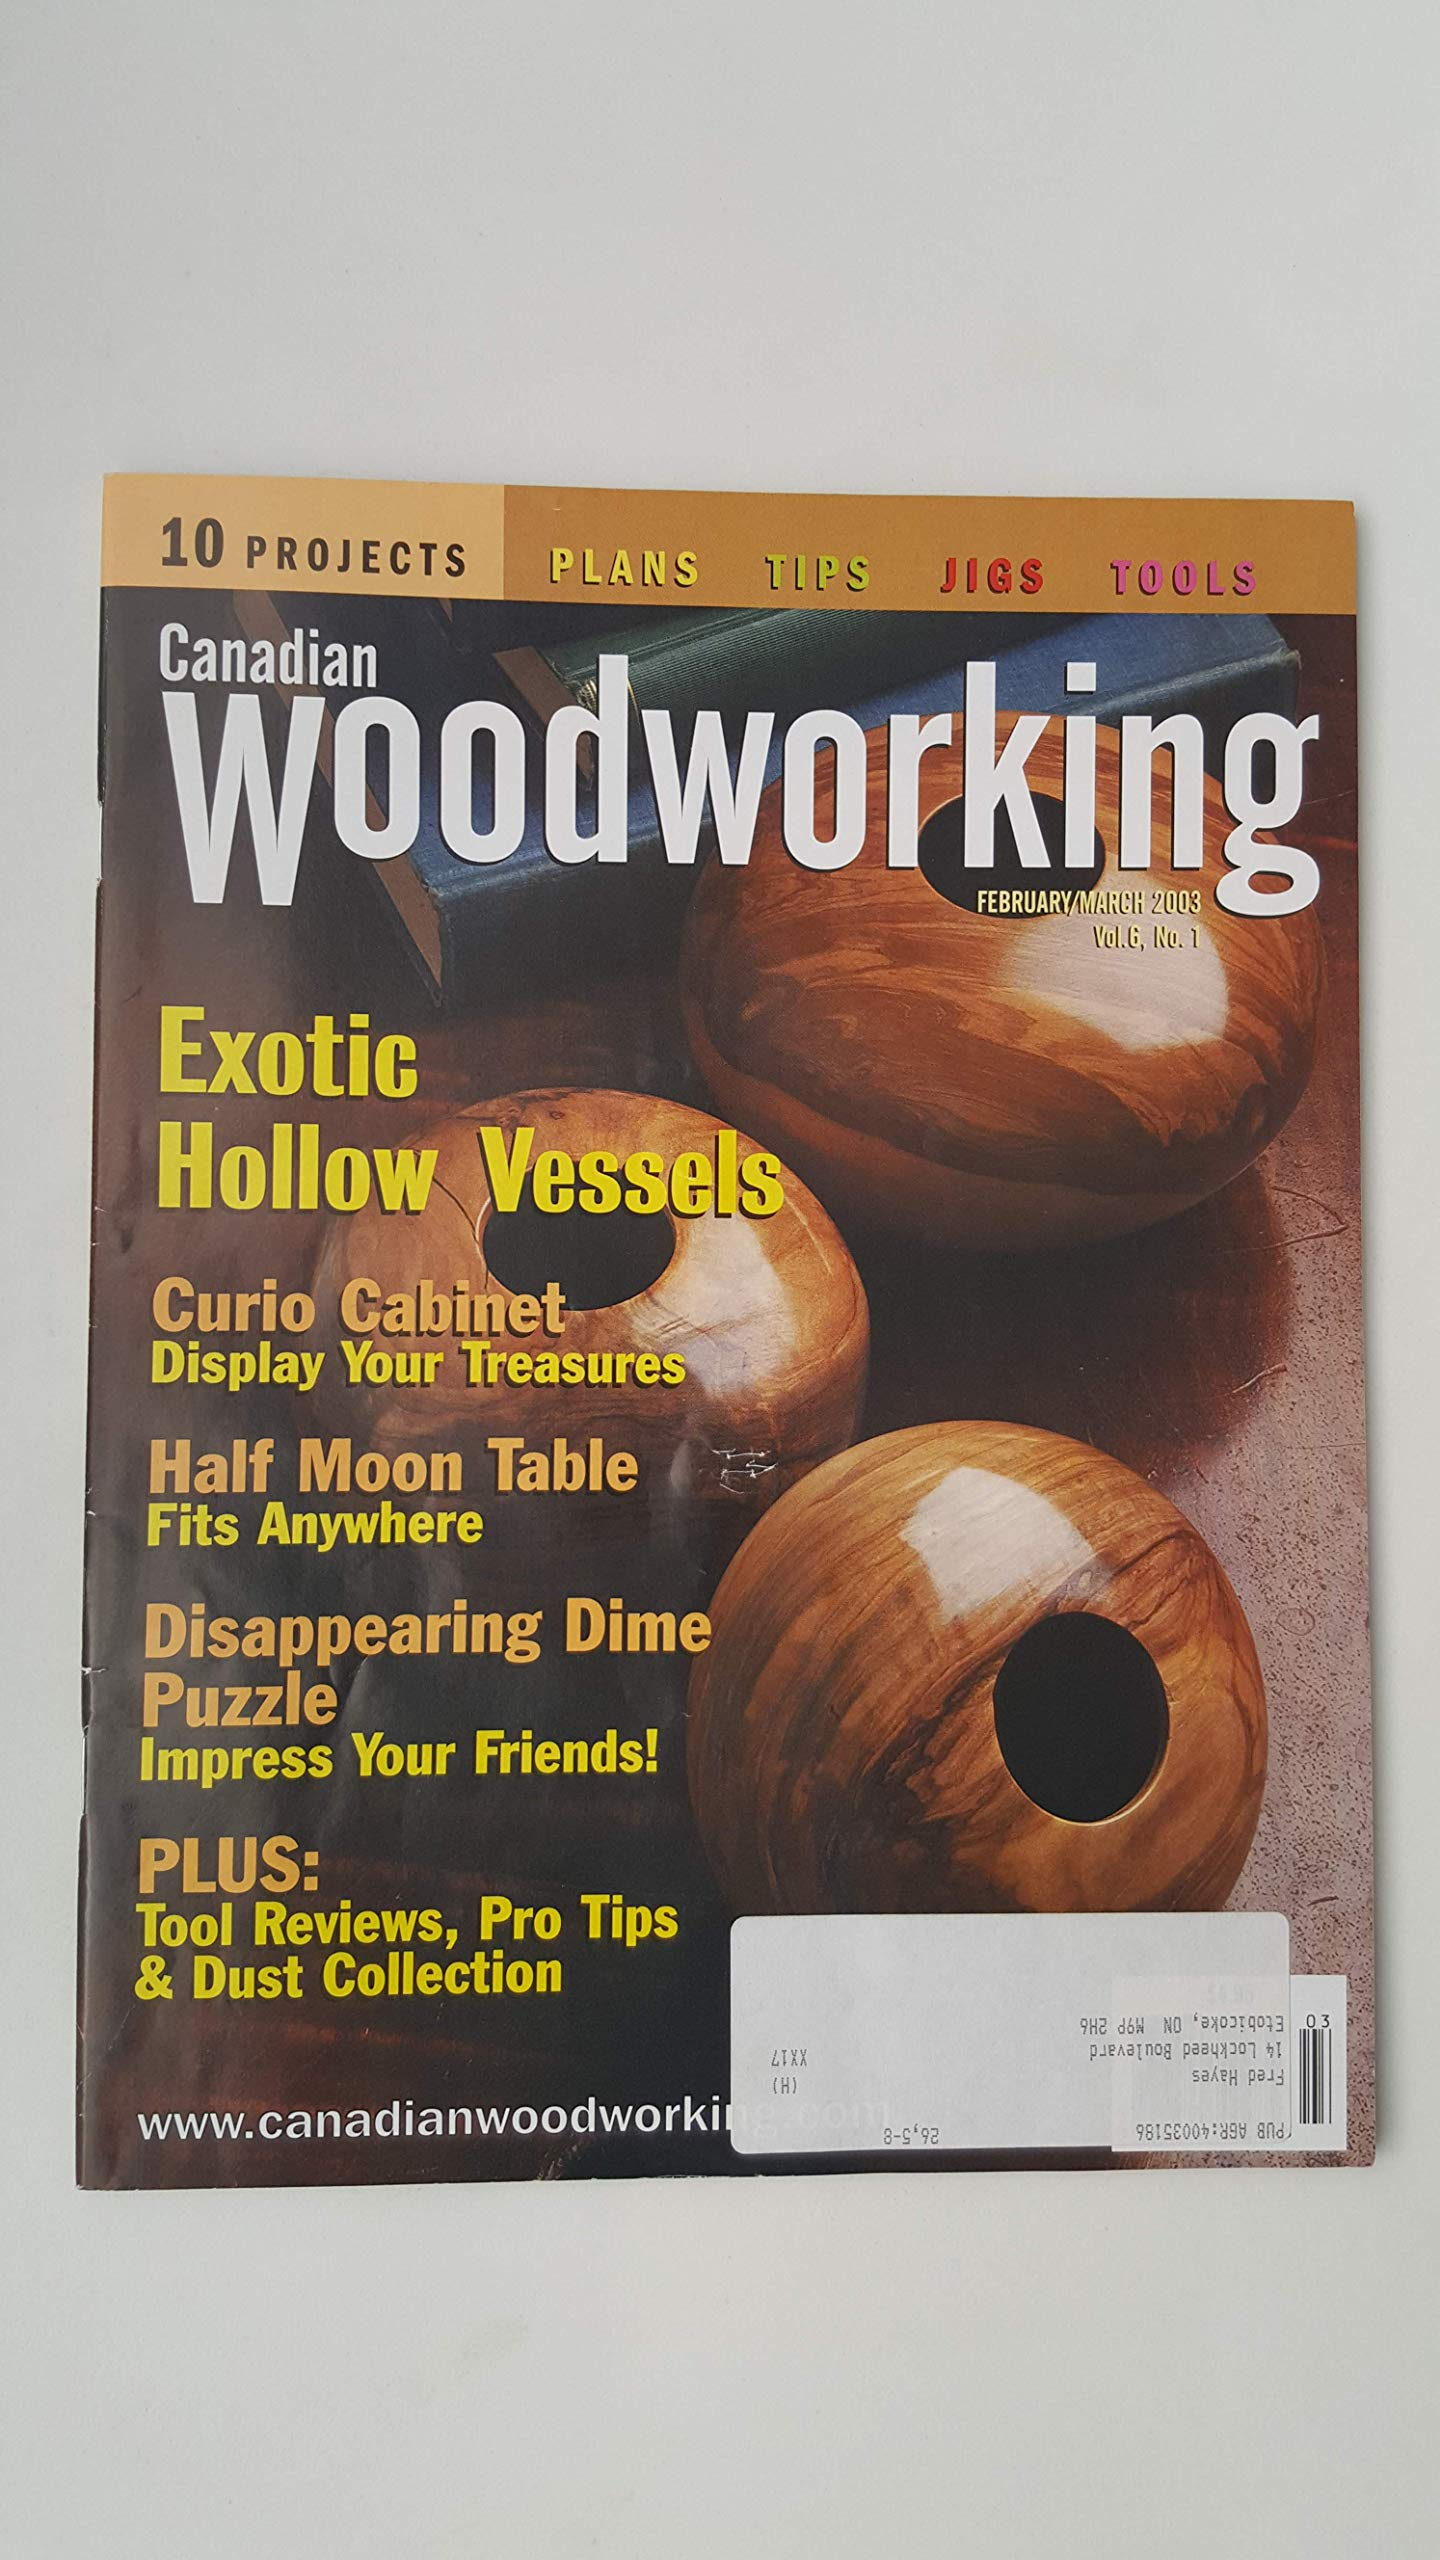 Canadian Woodworking Magazine February March 2003 Paul